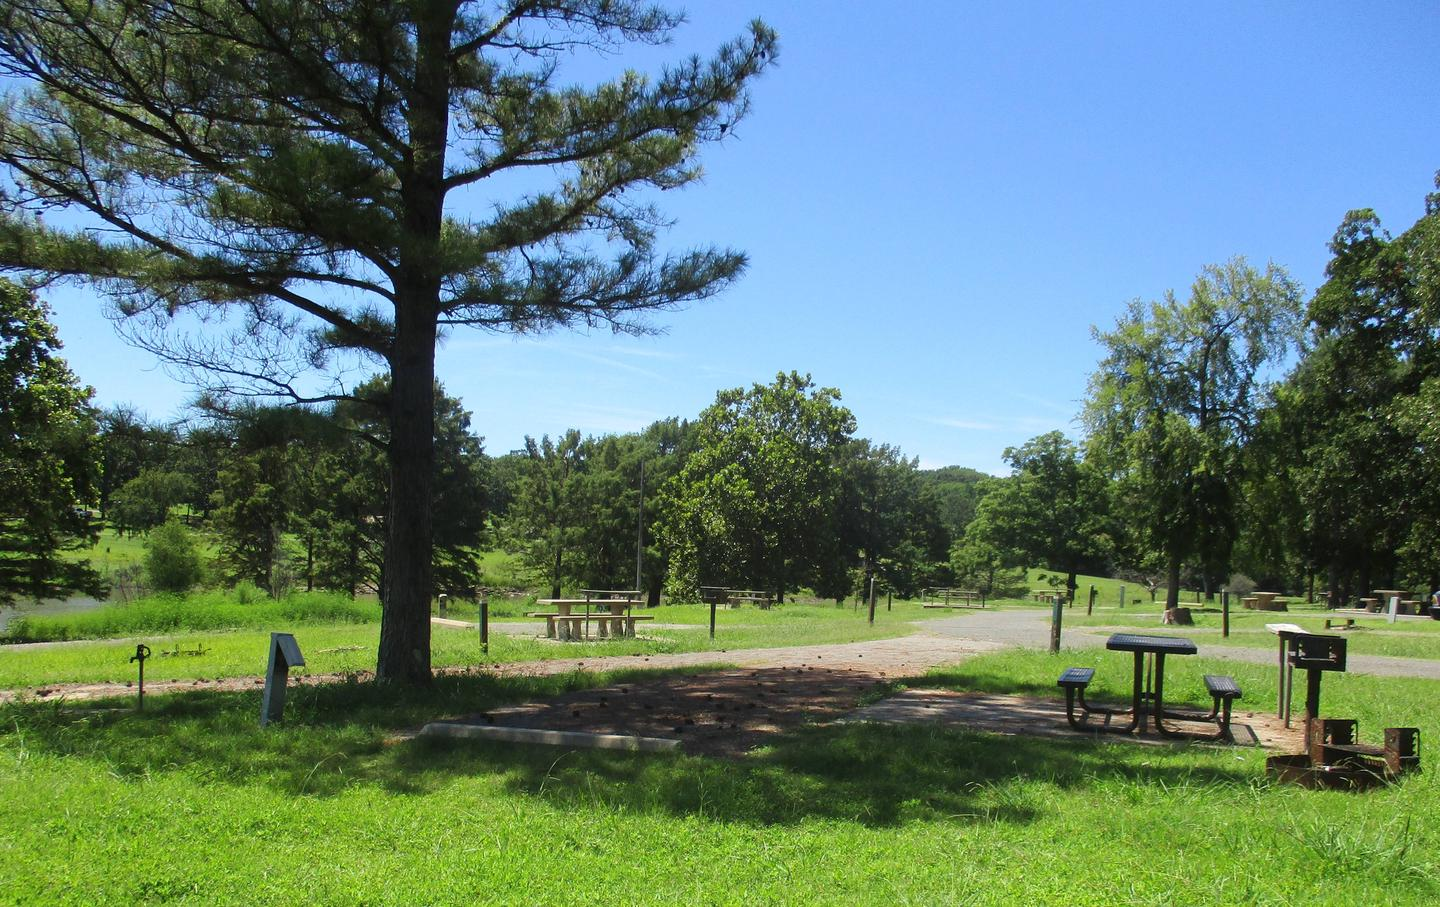 Site 15 - TFSSite 15 is a back in site with an asphalt drive.  Large pine tree offers partial shade throughout the day.